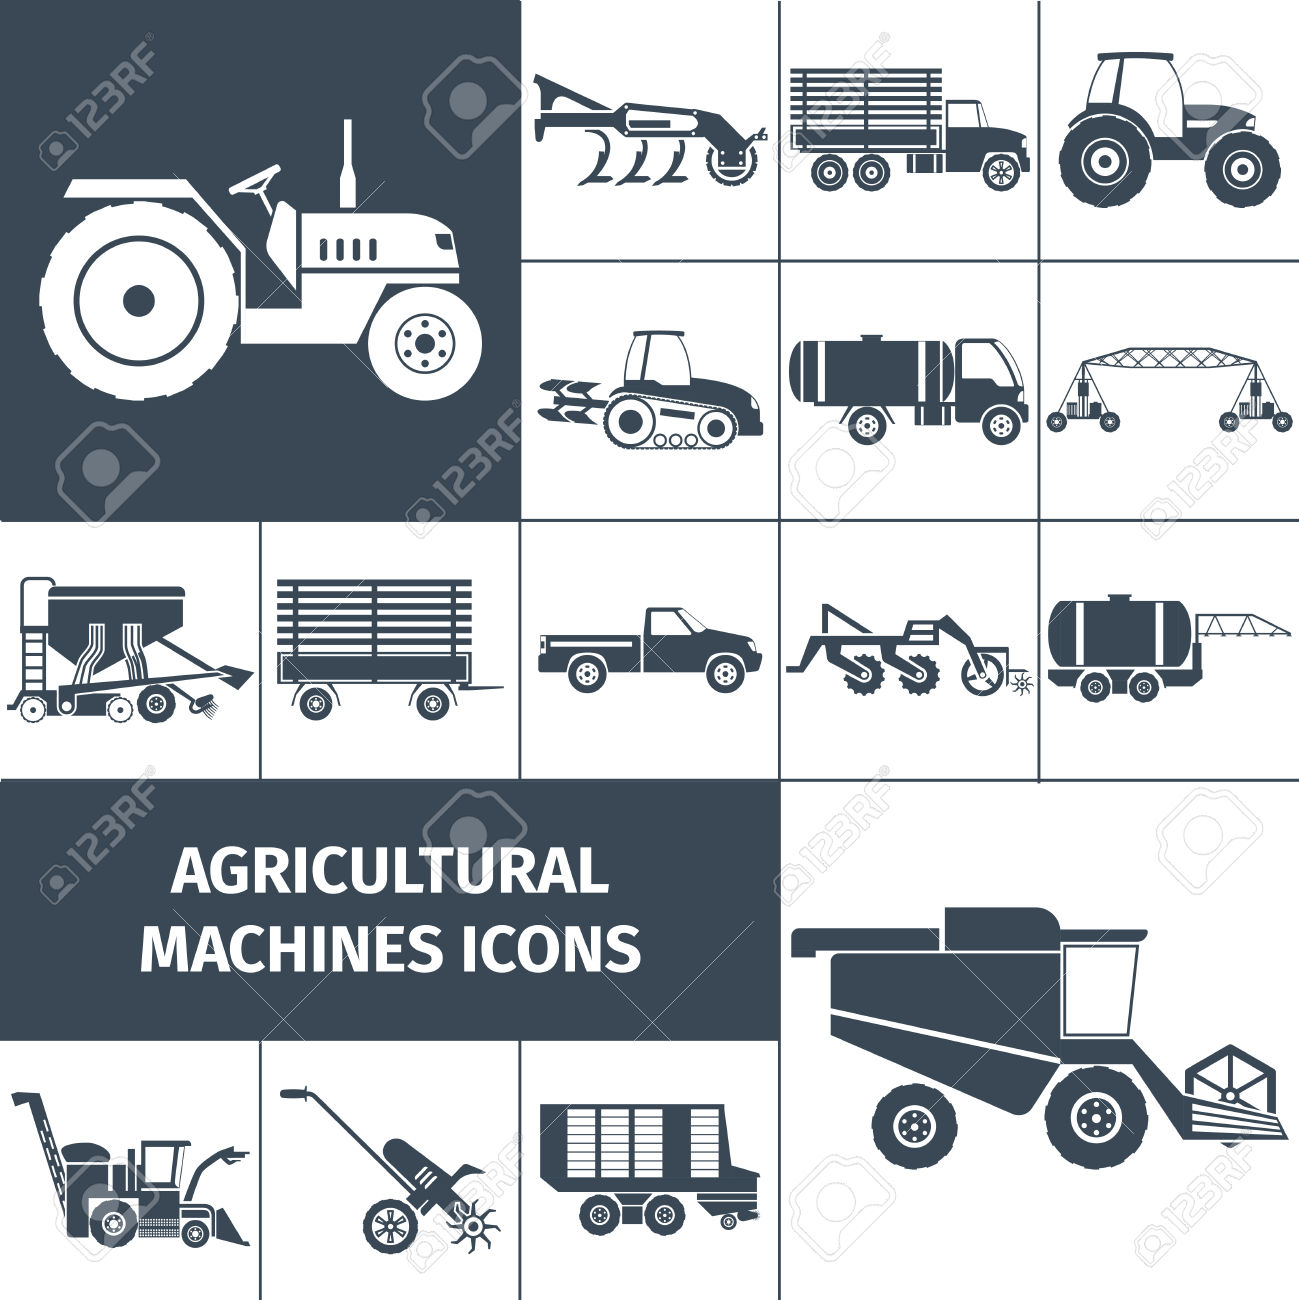 Agricultural Machinery Black White Square Icons Set With Farming.